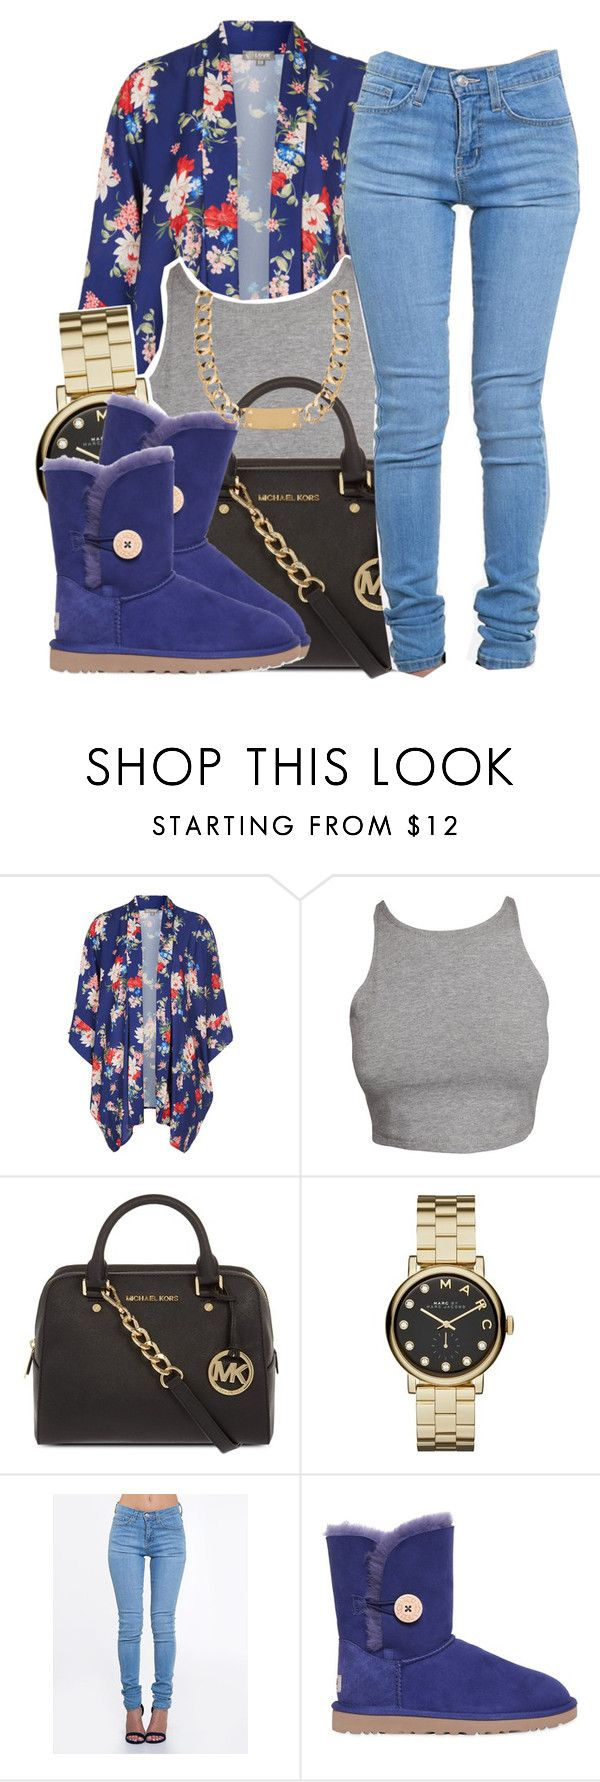 """11/07/15"" by clickk-mee ❤ liked on Polyvore featuring Love, MICHAEL Michael Kors, Marc by Marc Jacobs, ZooShoo, UGG Australia and House of Harlow 1960"